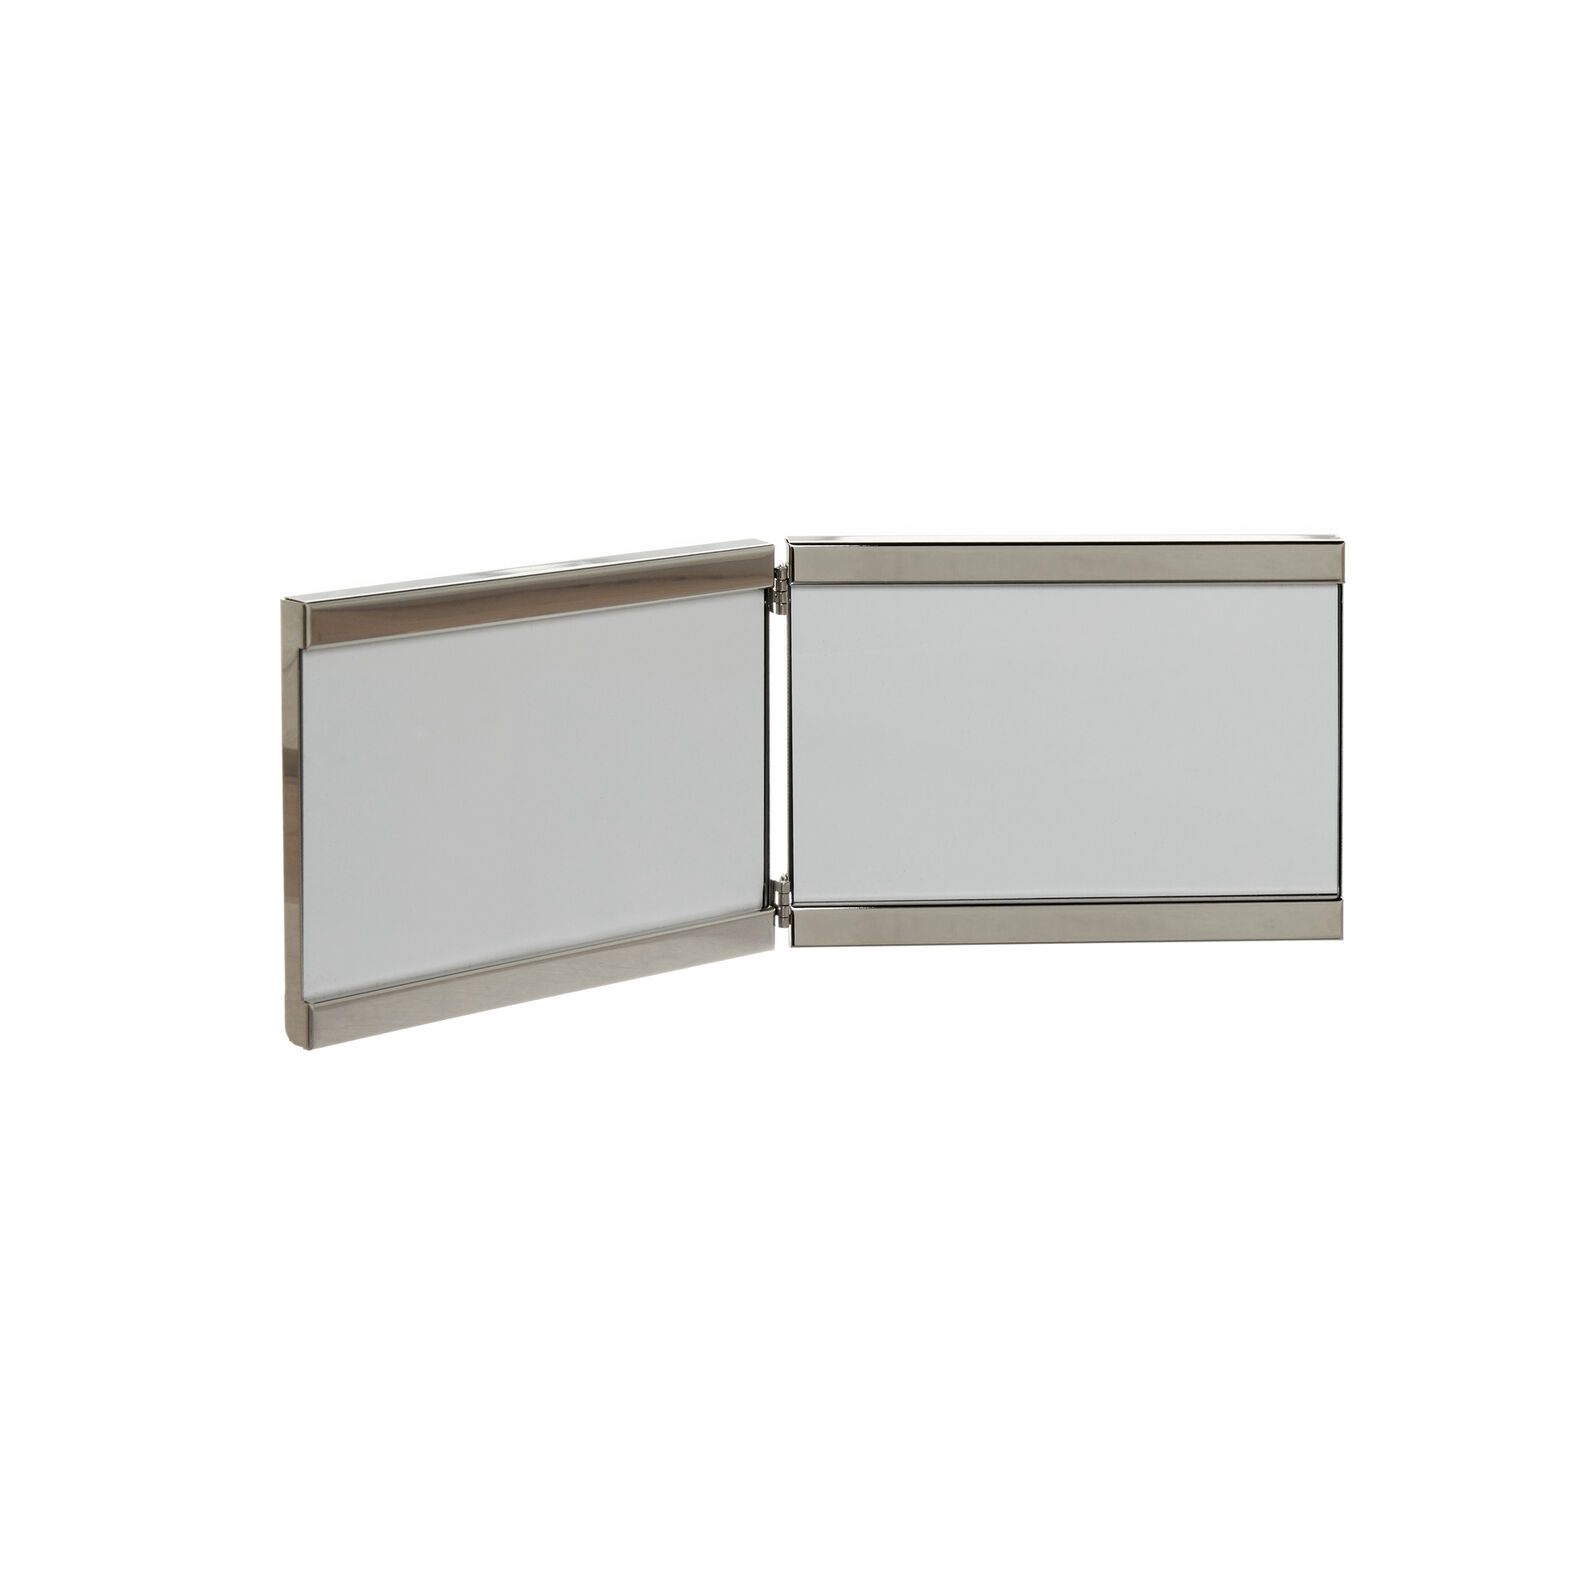 Silver-plated photo holder with two frames